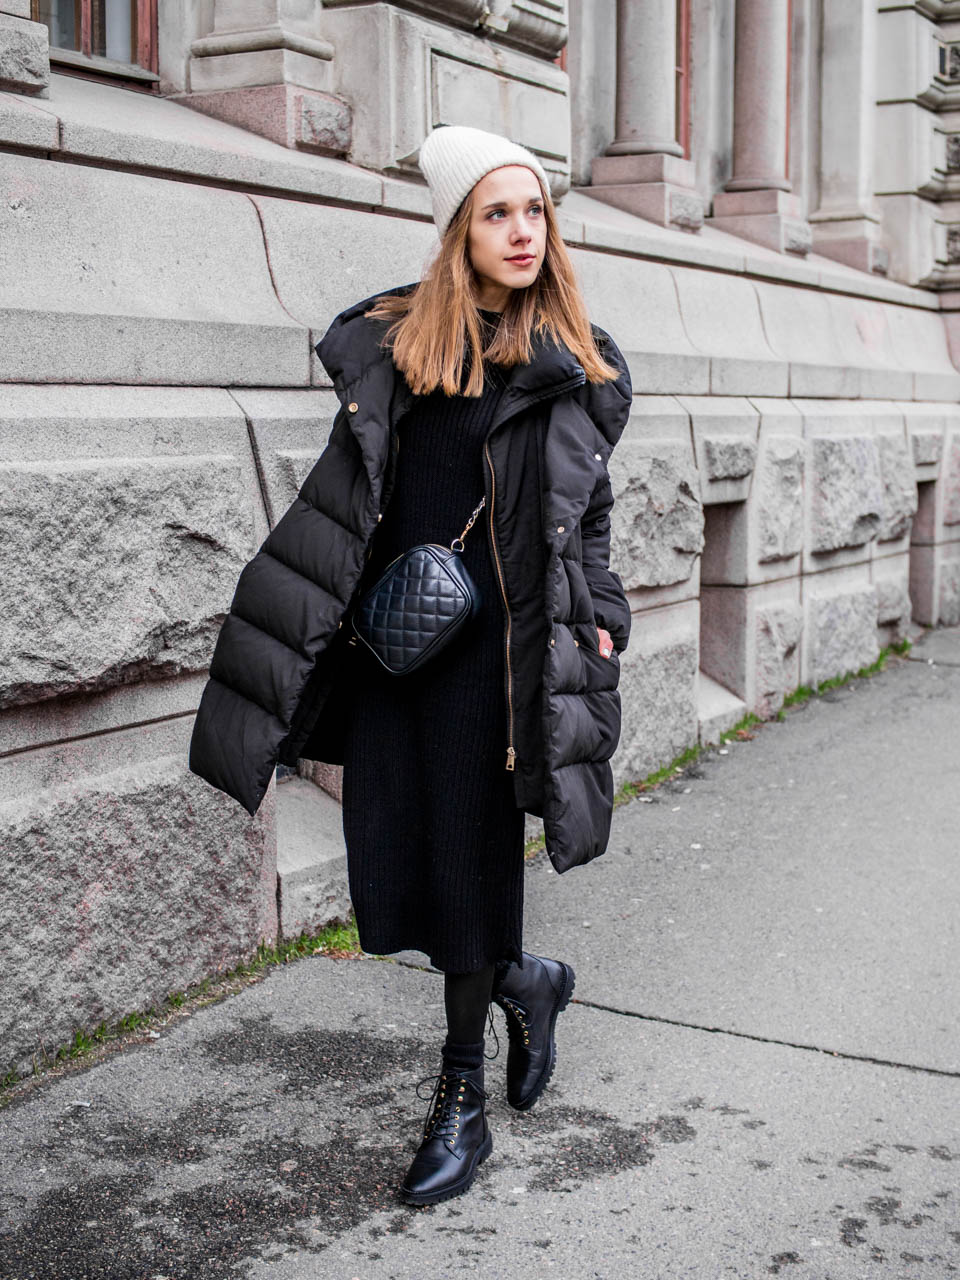 All Black Winter Outfit With &Other Stories Lace Up Leather Boots - Kokomusta talviasu ja &OtherStories mustat nahkanilkkurit